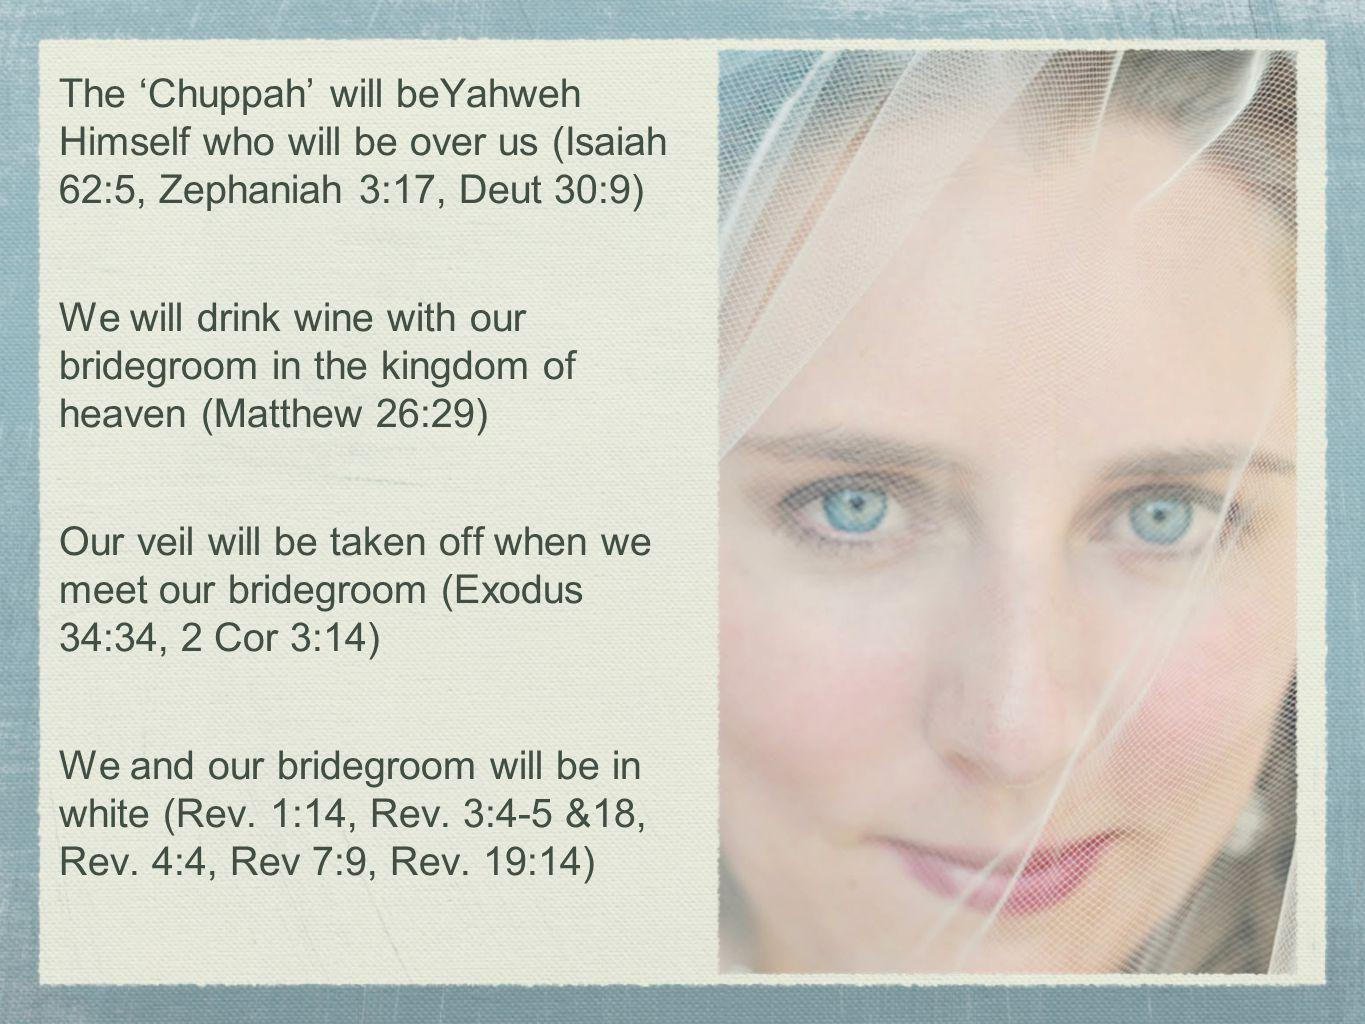 The 'Chuppah' will beYahweh Himself who will be over us (Isaiah 62:5, Zephaniah 3:17, Deut 30:9)